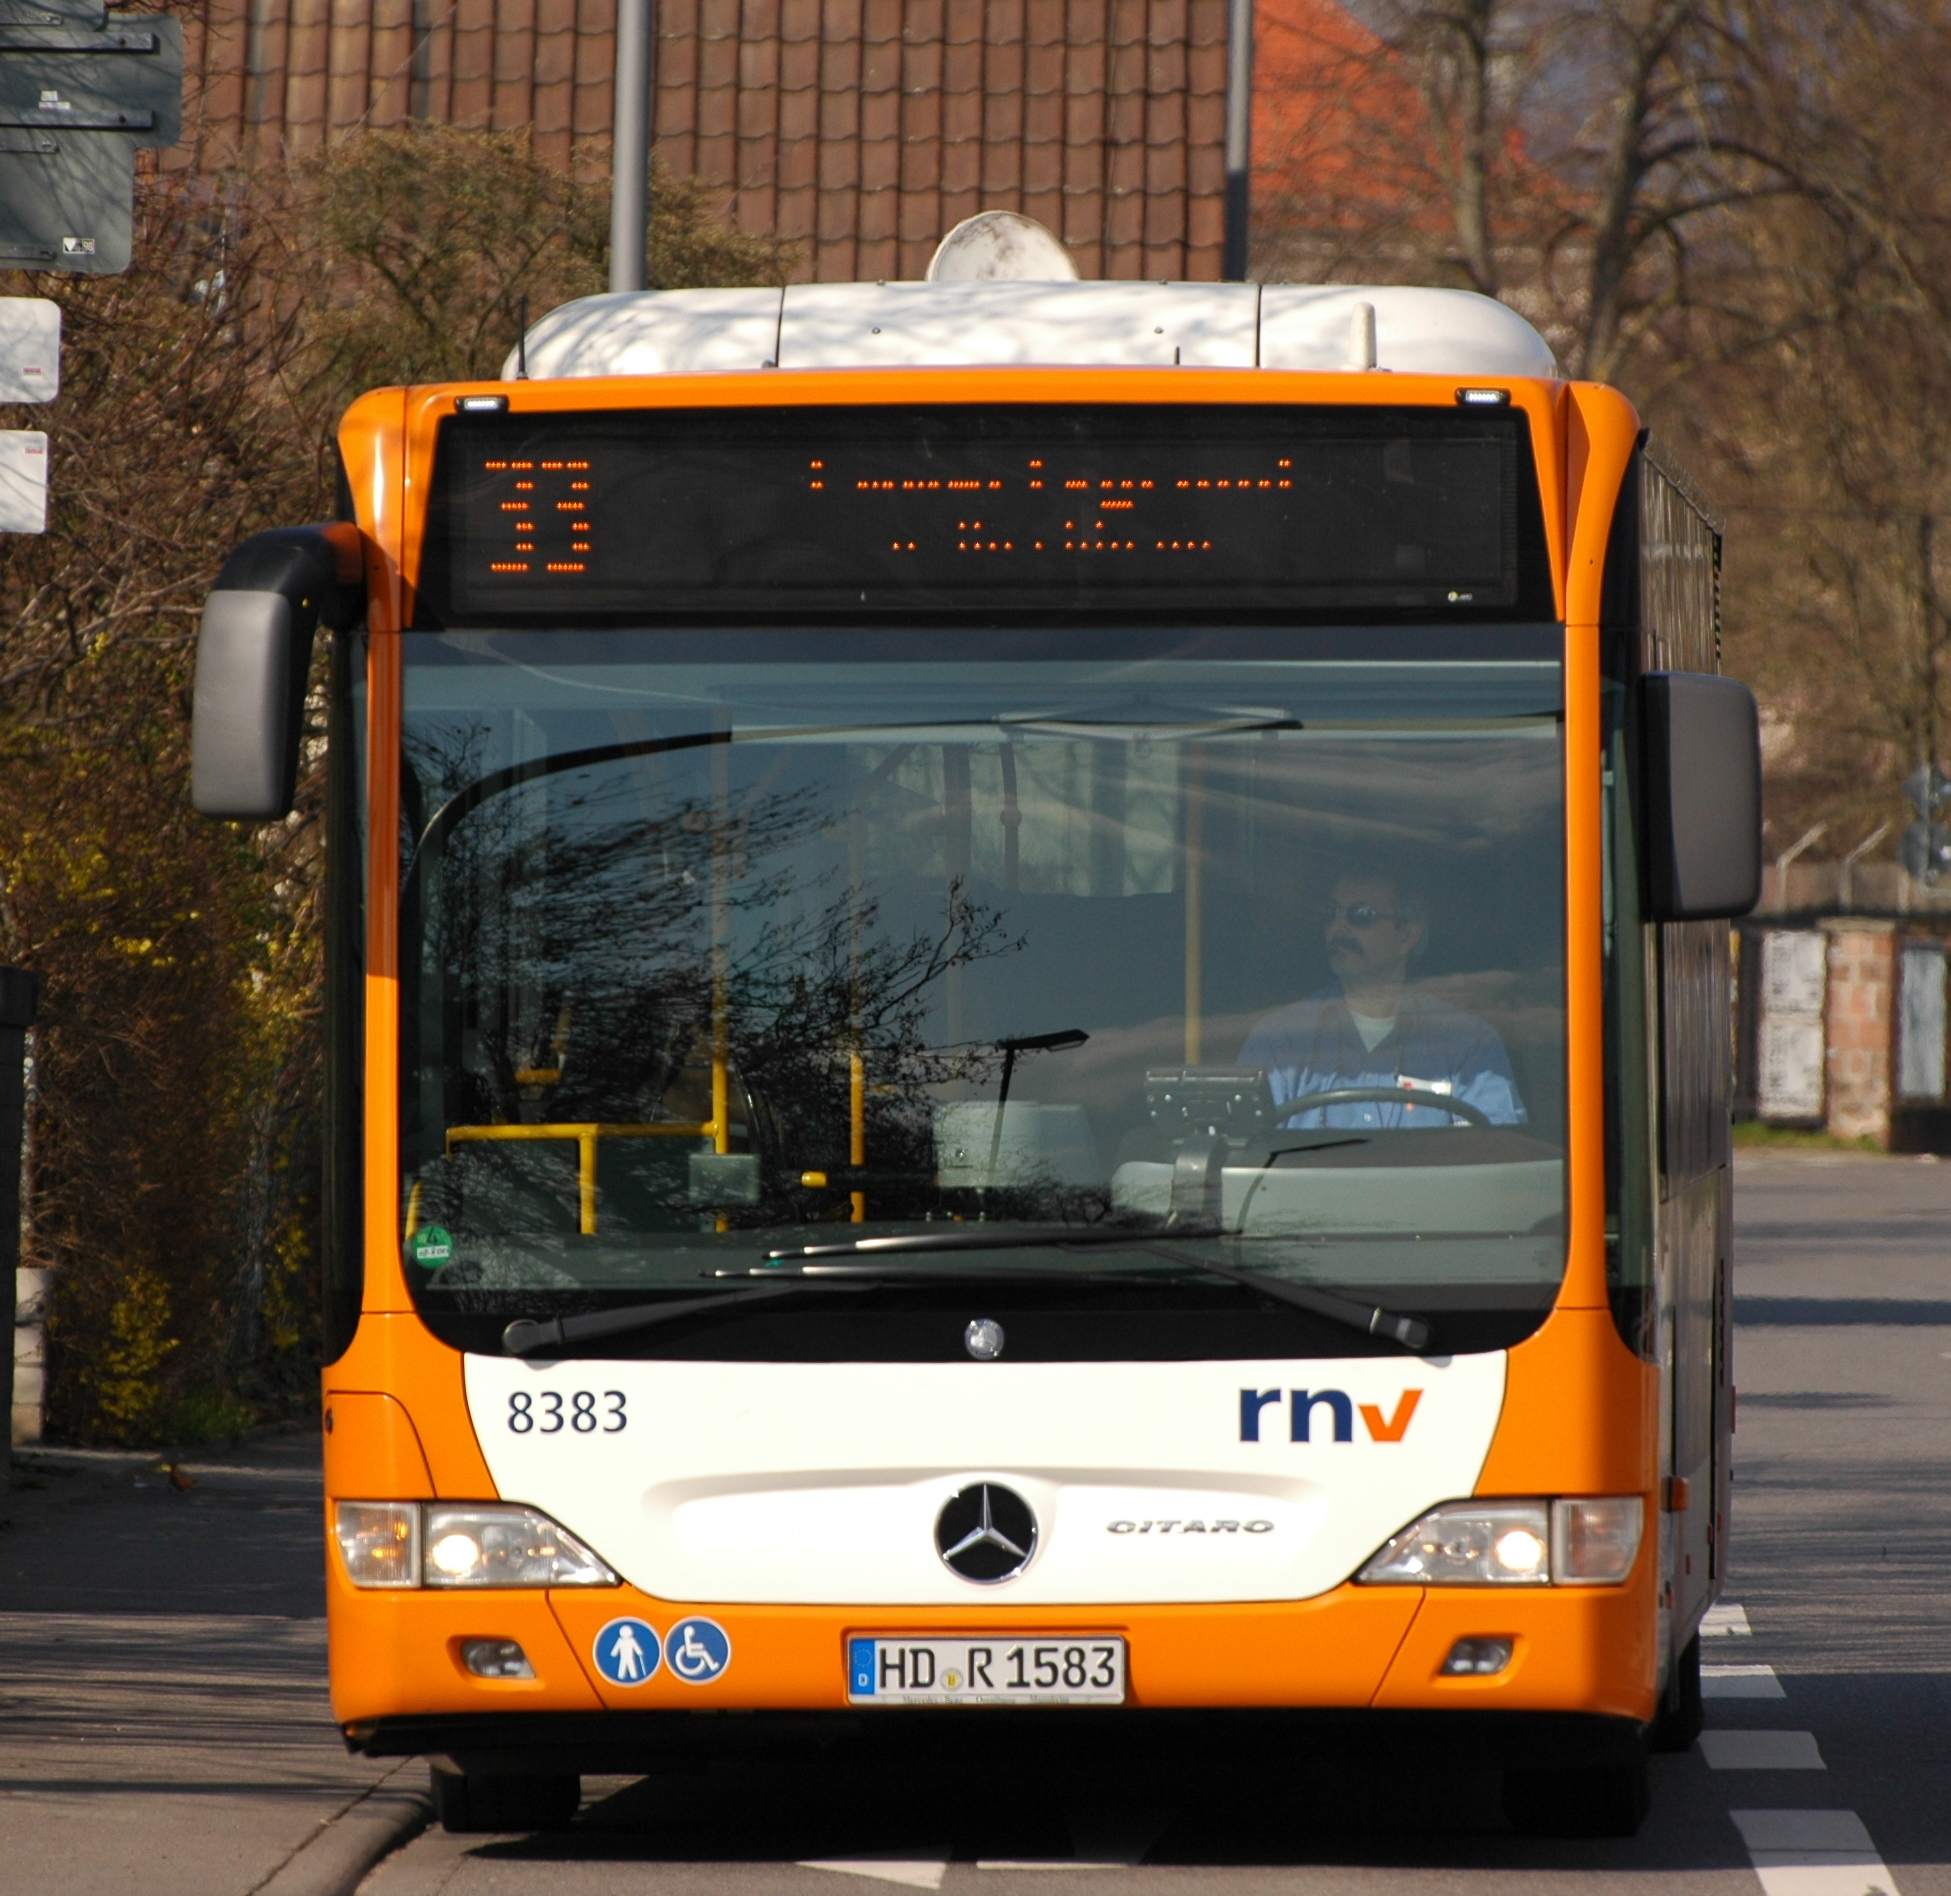 fileheidelberg mercedes benz o 530 citaro fl hd r 1583 rnv